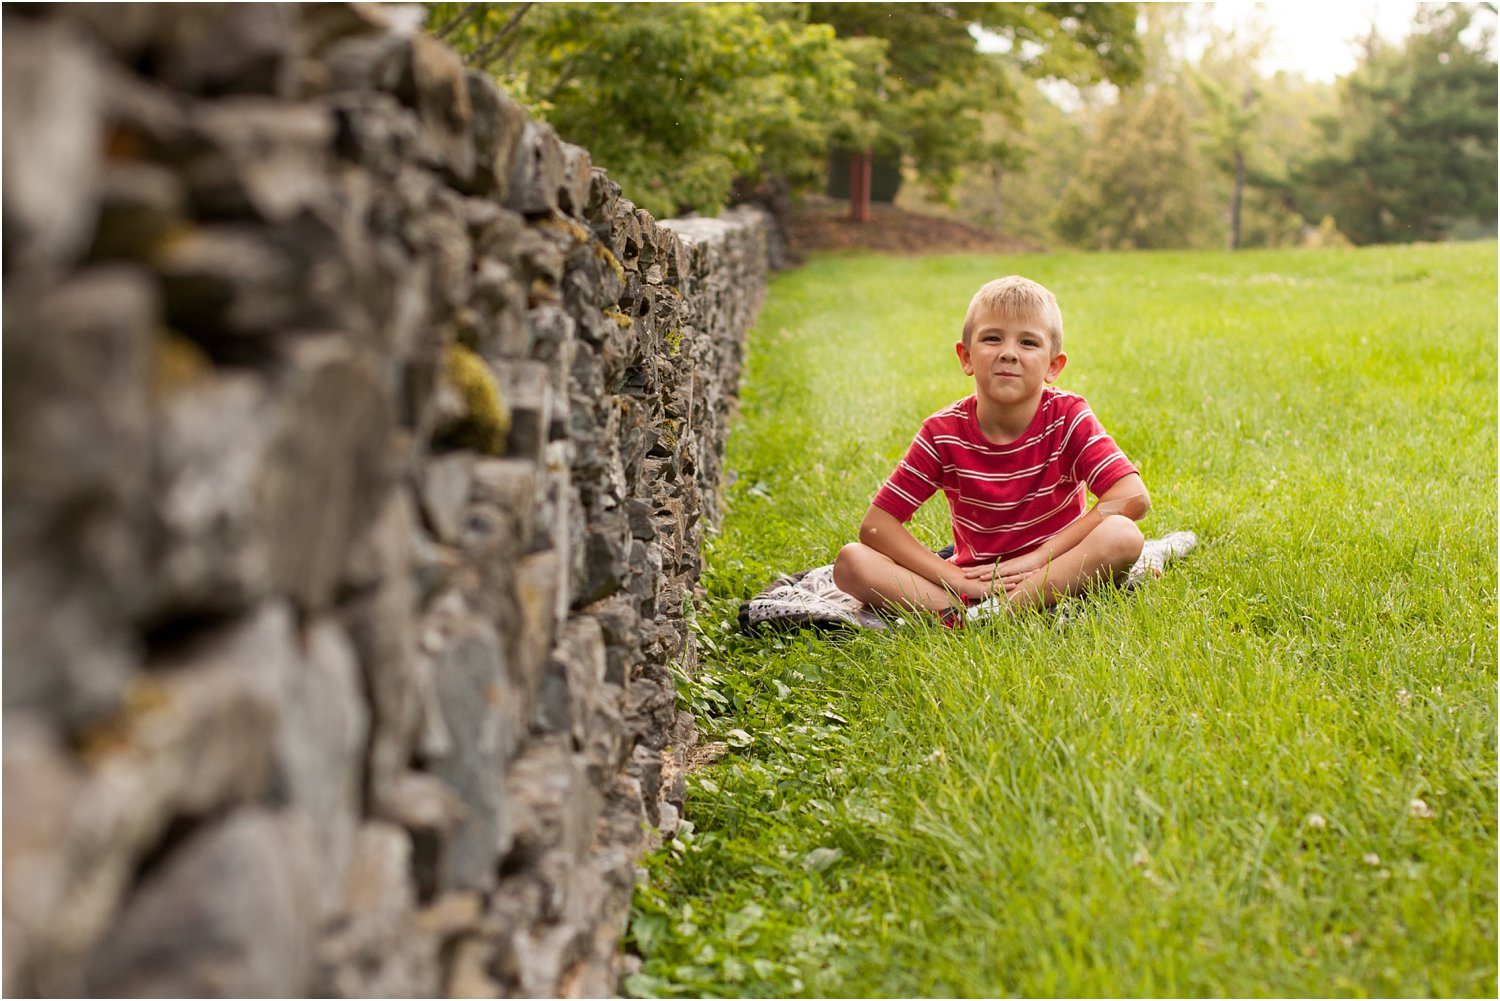 Blandy_Arboretum_Sibling_Mini_Sessions_Dodrill_0005.jpg